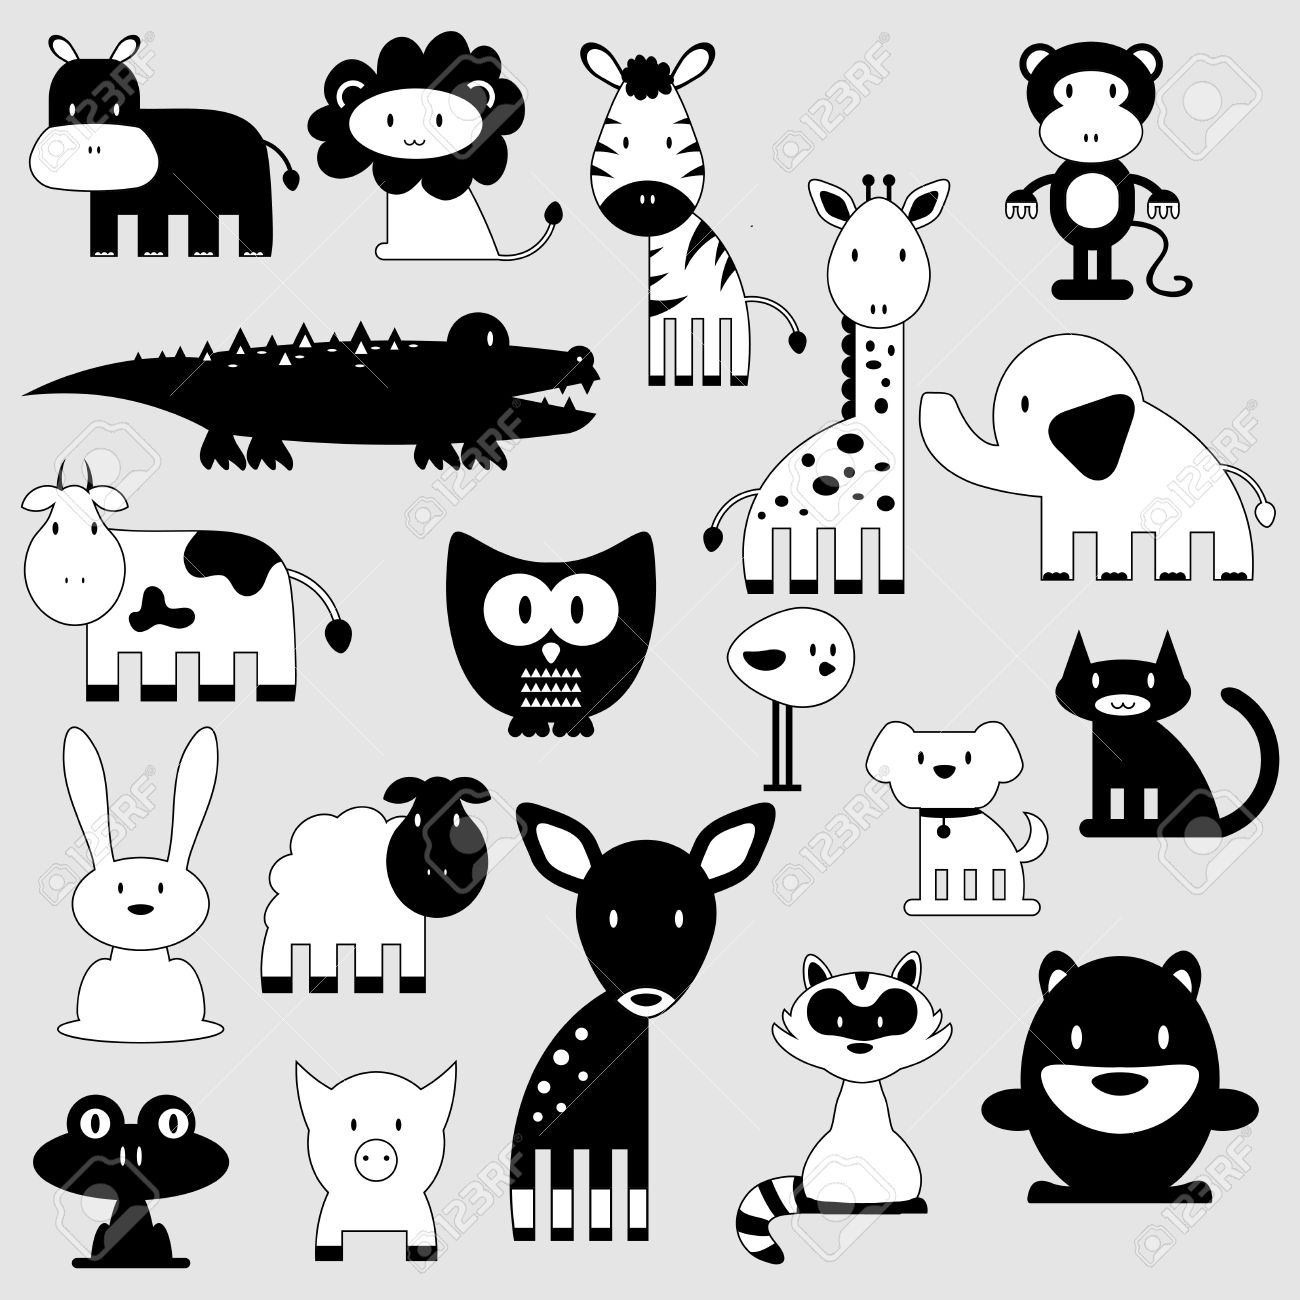 Raccoon Dog clipart #8, Download drawings